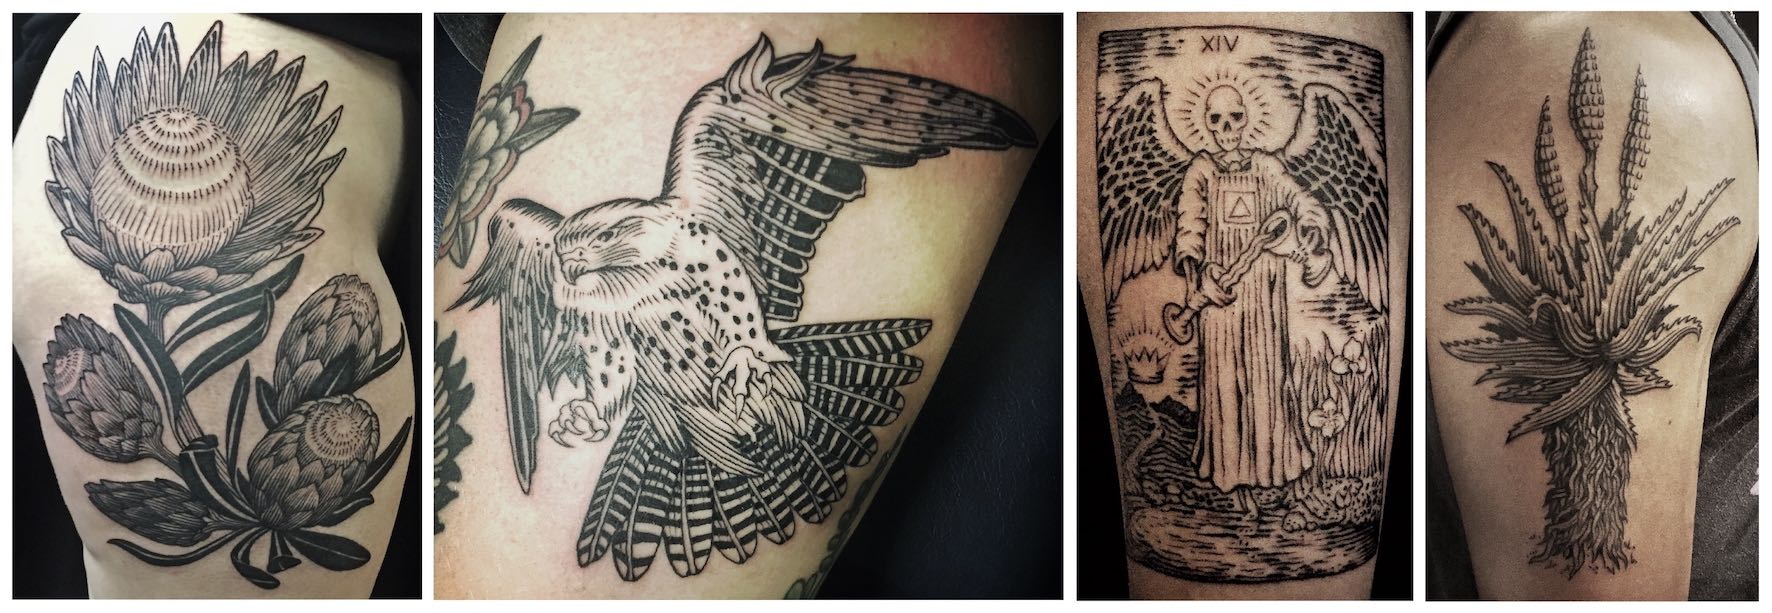 Etch style tattoos done by Tyler B. Murphy